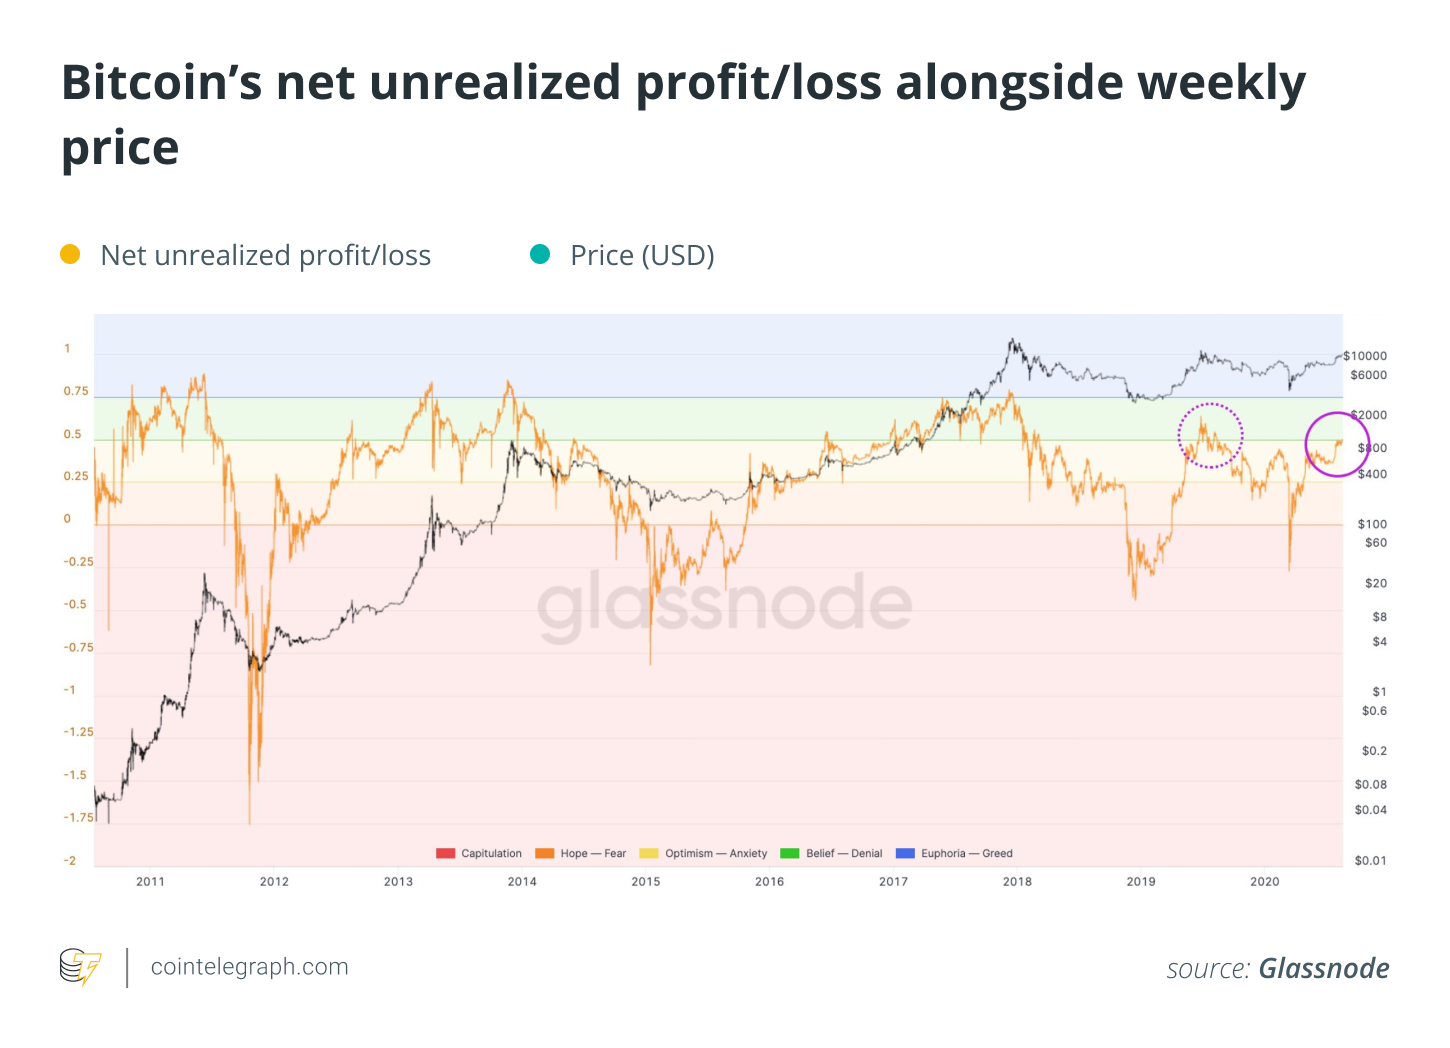 Bitcoin's net unrealized profit